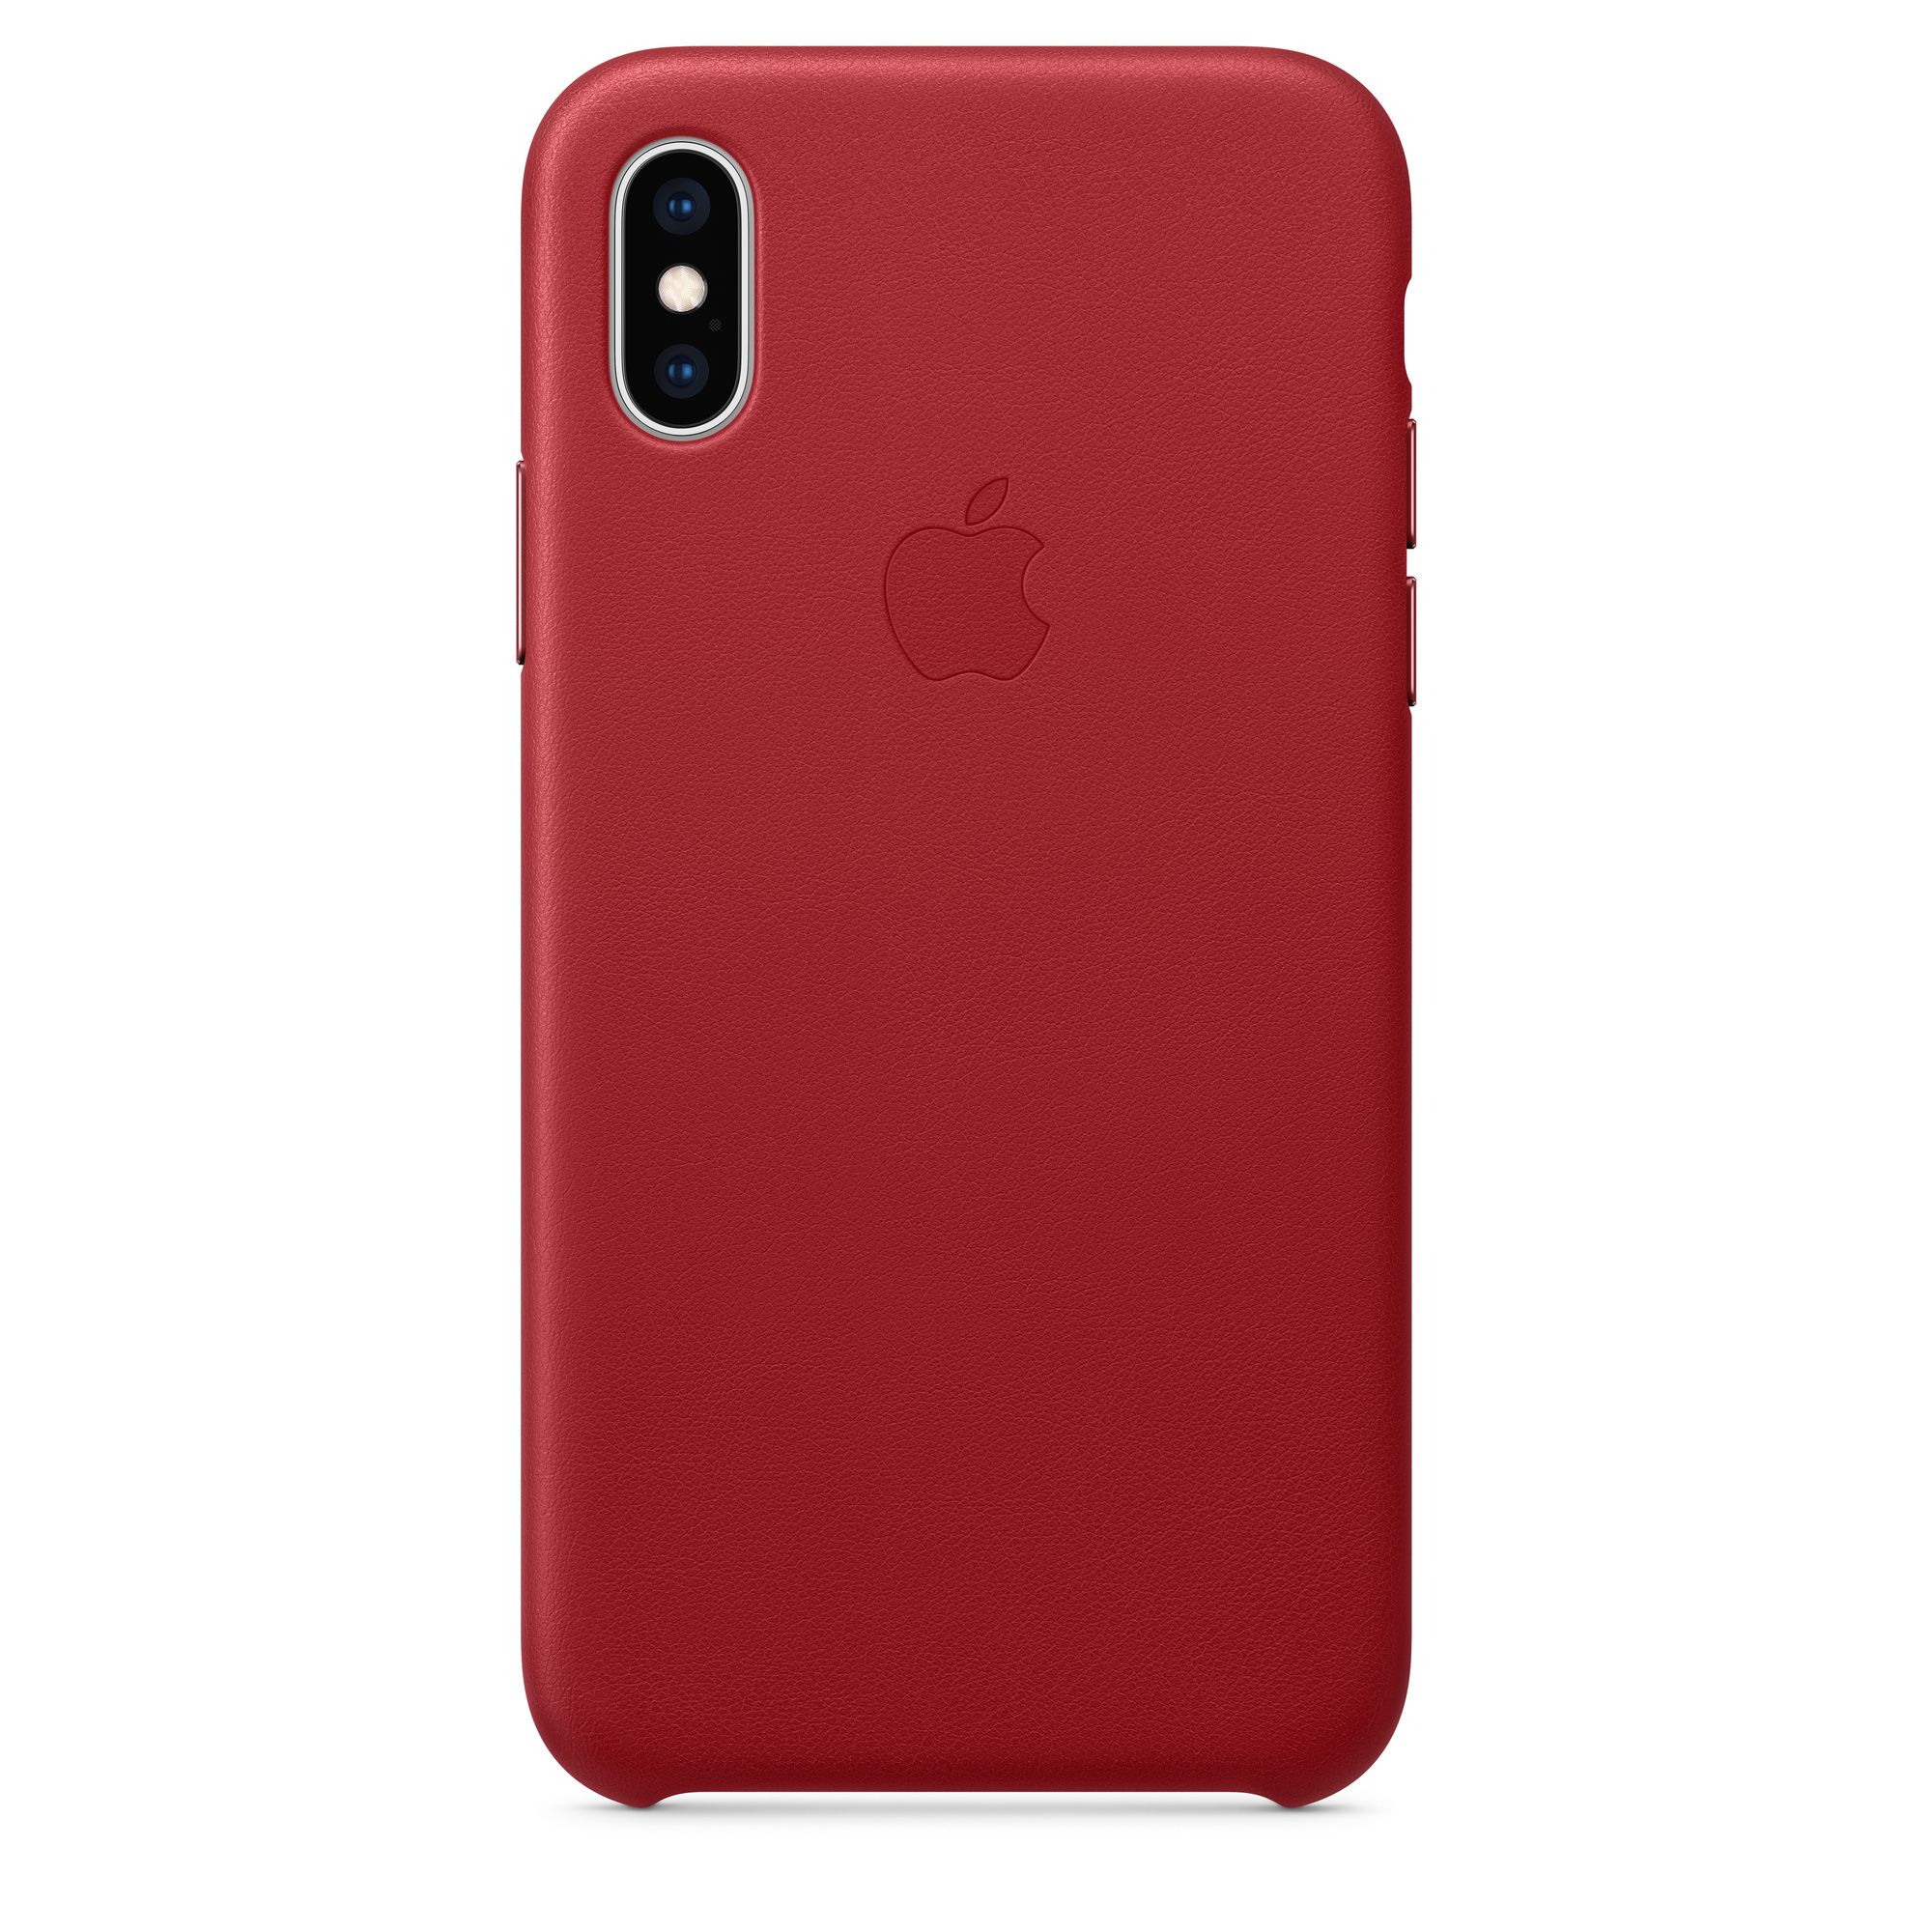 official photos b334e 8fd5a iPhone XS Leather Case - (PRODUCT)RED